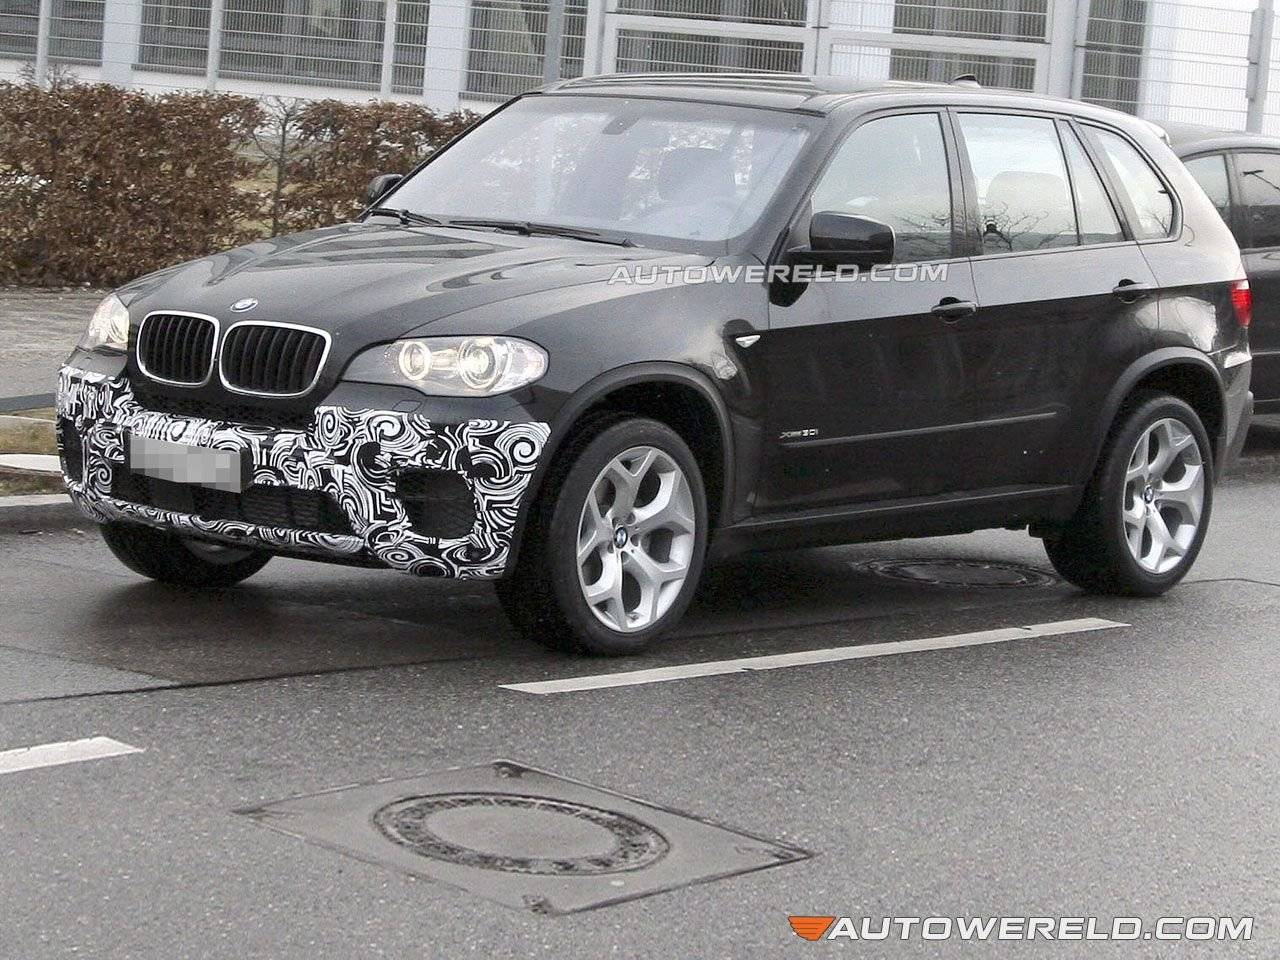 facelift voor bmw x5 op komst spyshots. Black Bedroom Furniture Sets. Home Design Ideas